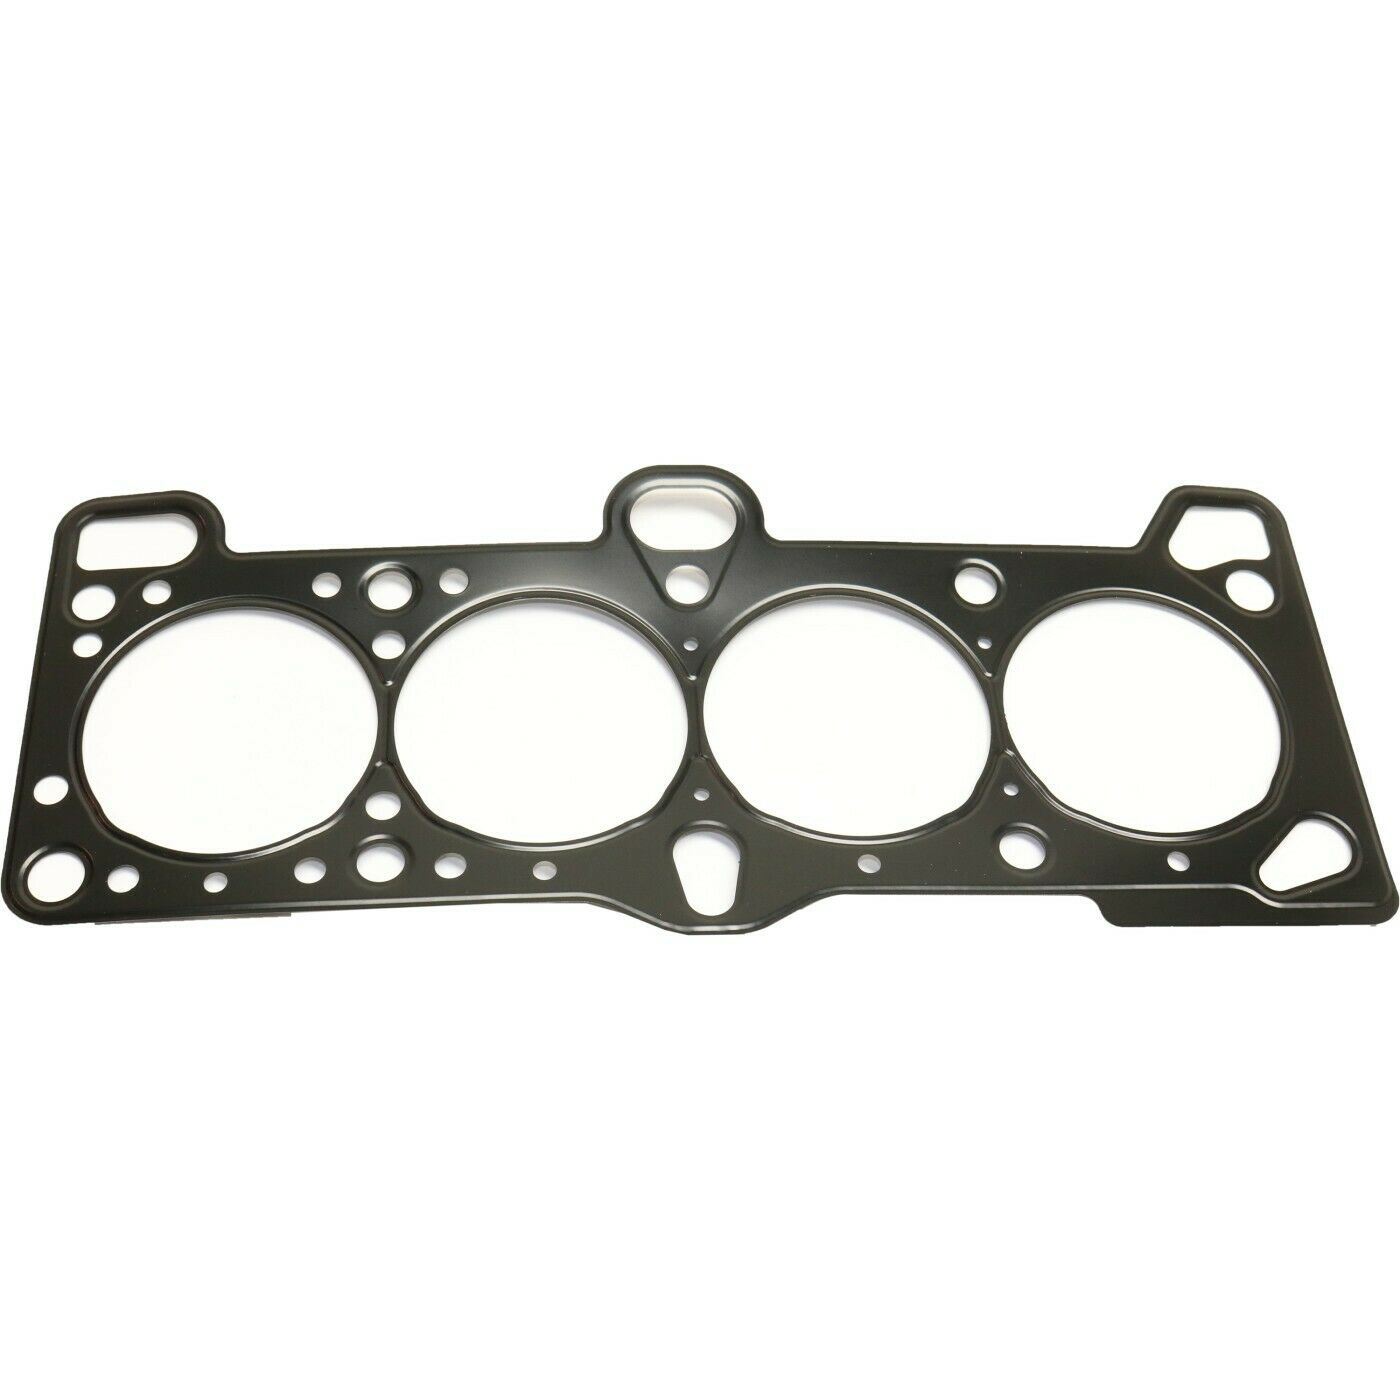 New Cylinder Head Gasket Engine For Hyundai Accent Kia Rio Rio5 06 1 6l Of 5free Shipping